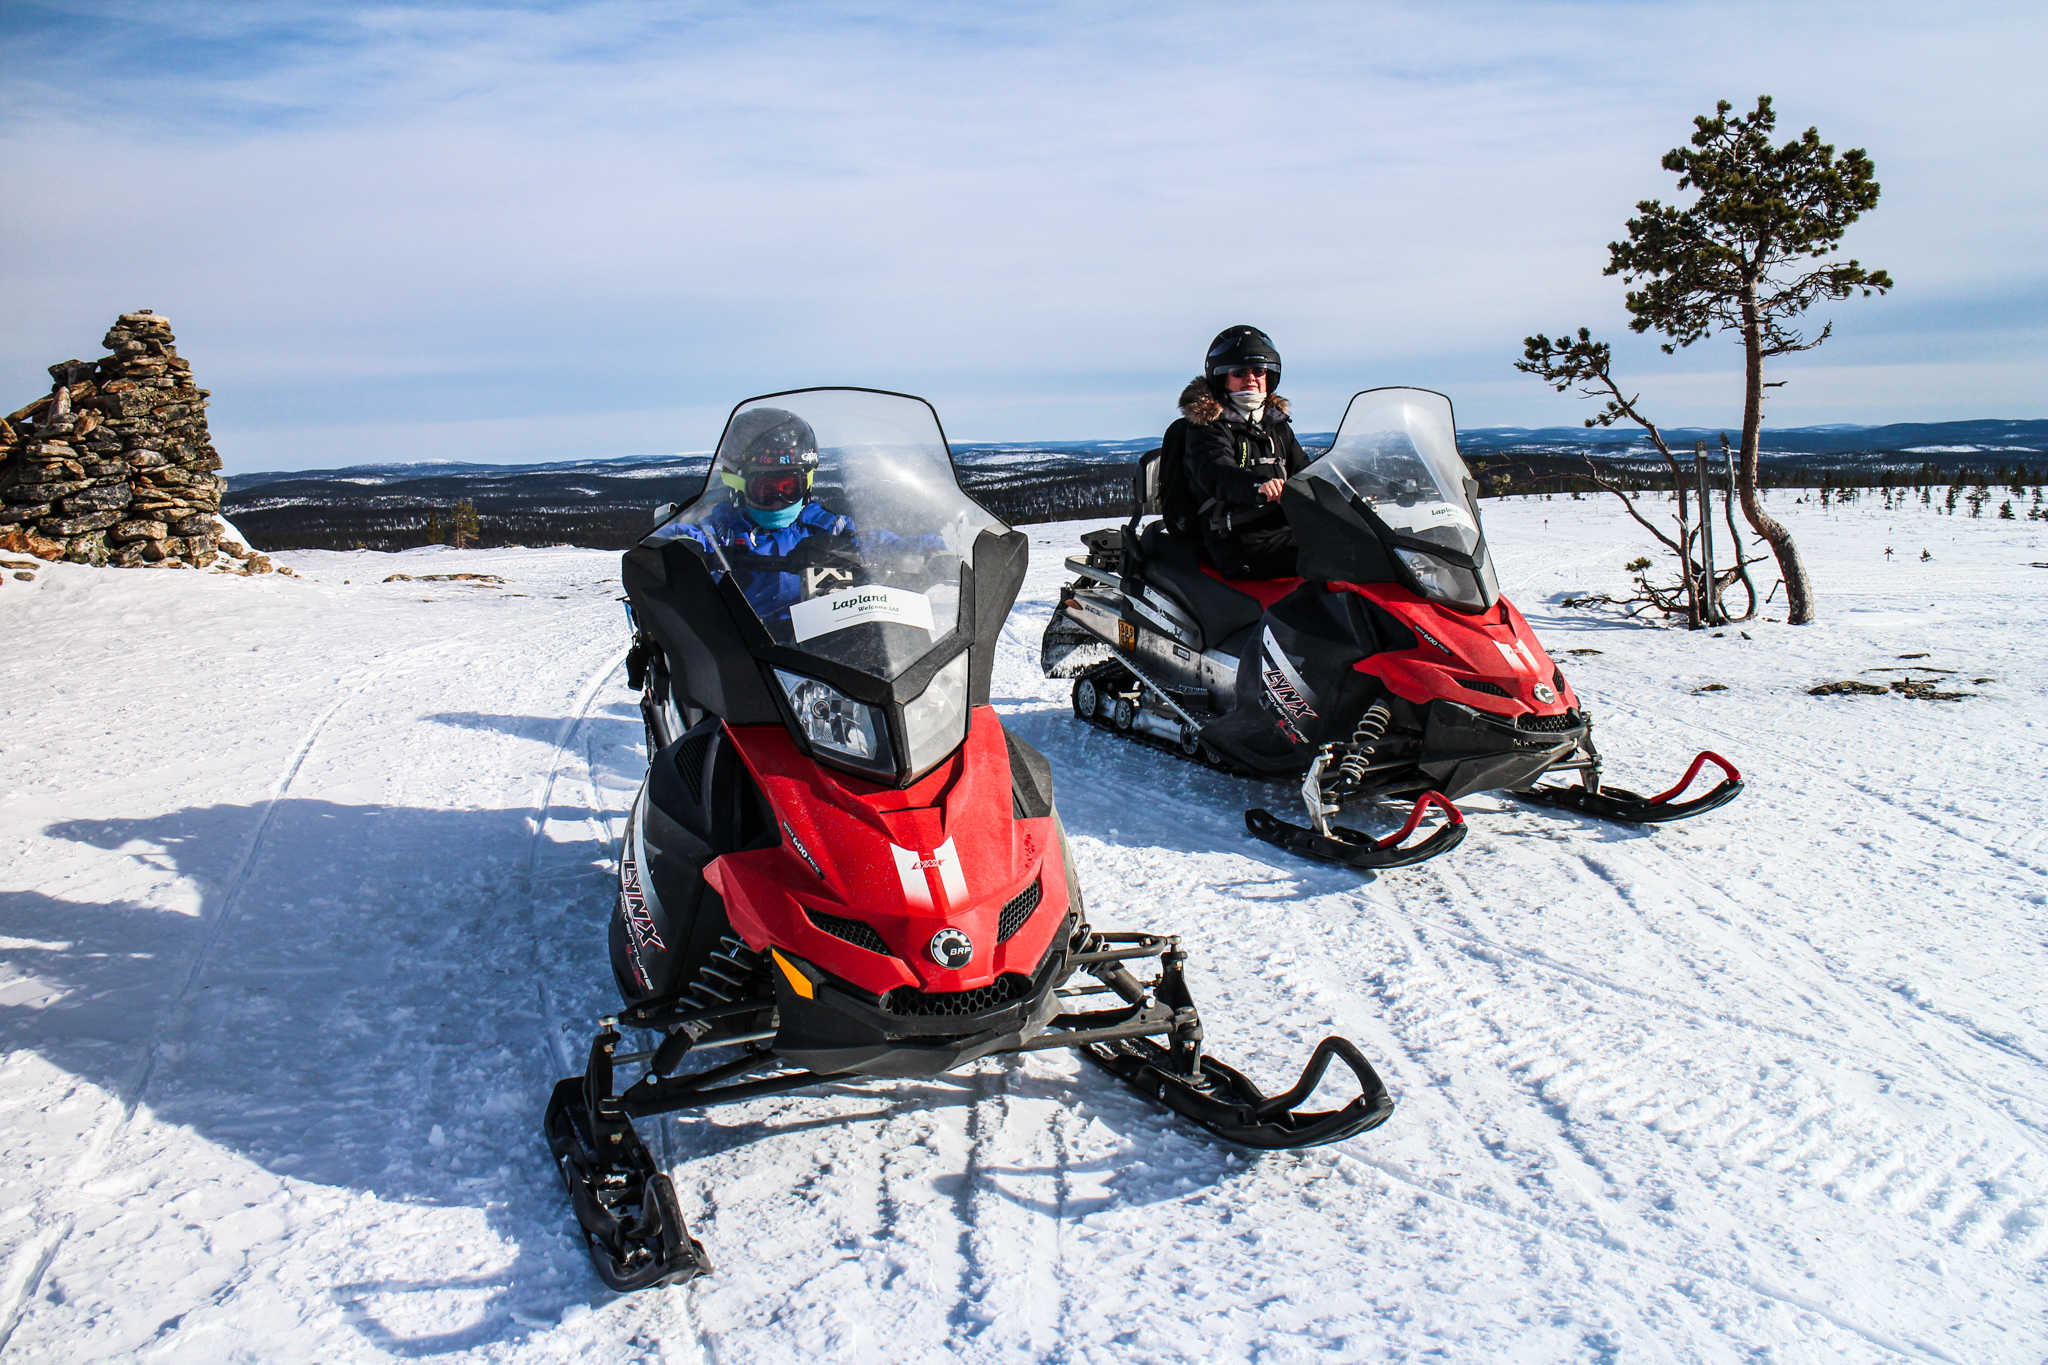 two people on snowmobiles and landscape